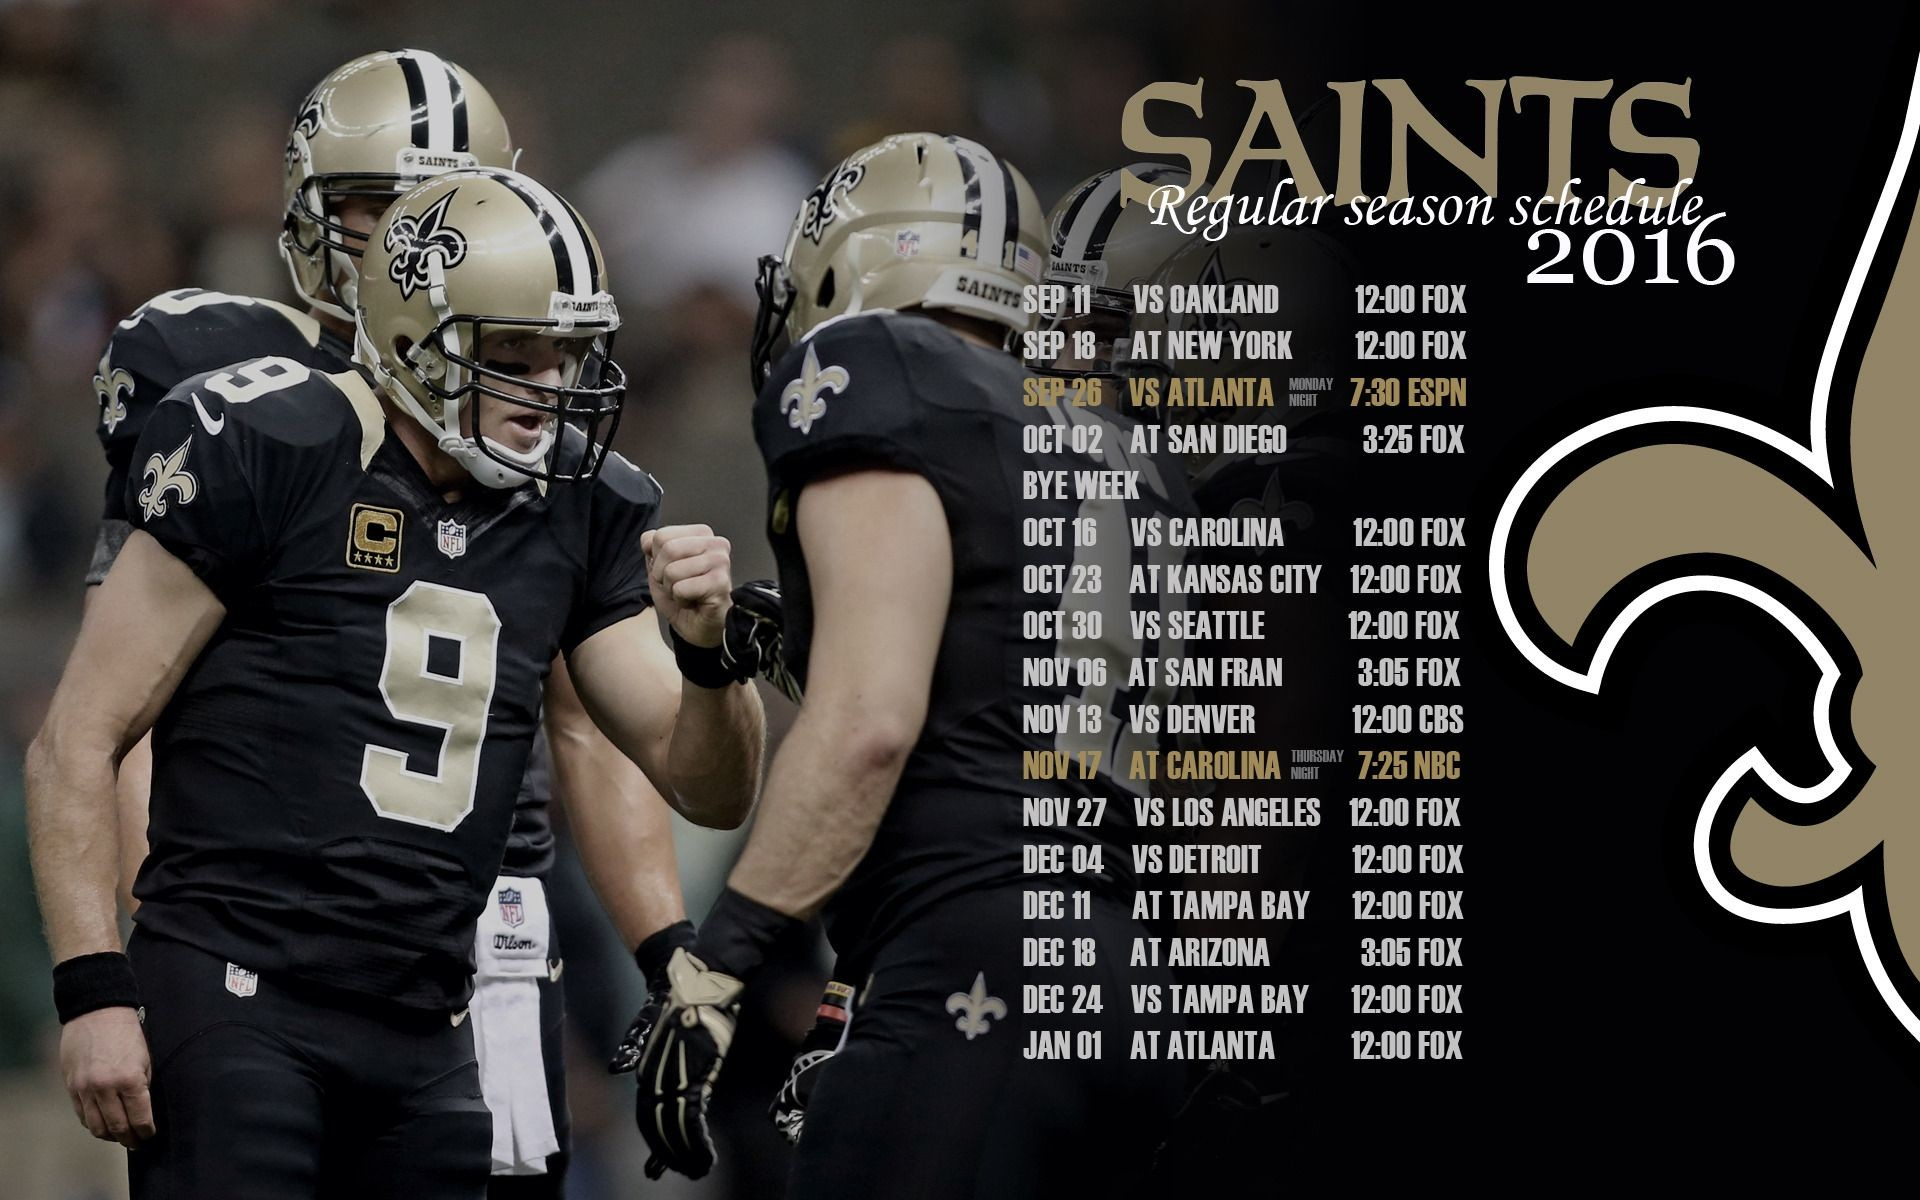 NEW ORLEANS SAINTS 2016 SCHEDULE WALLPAPERS** | TigerDroppings.com